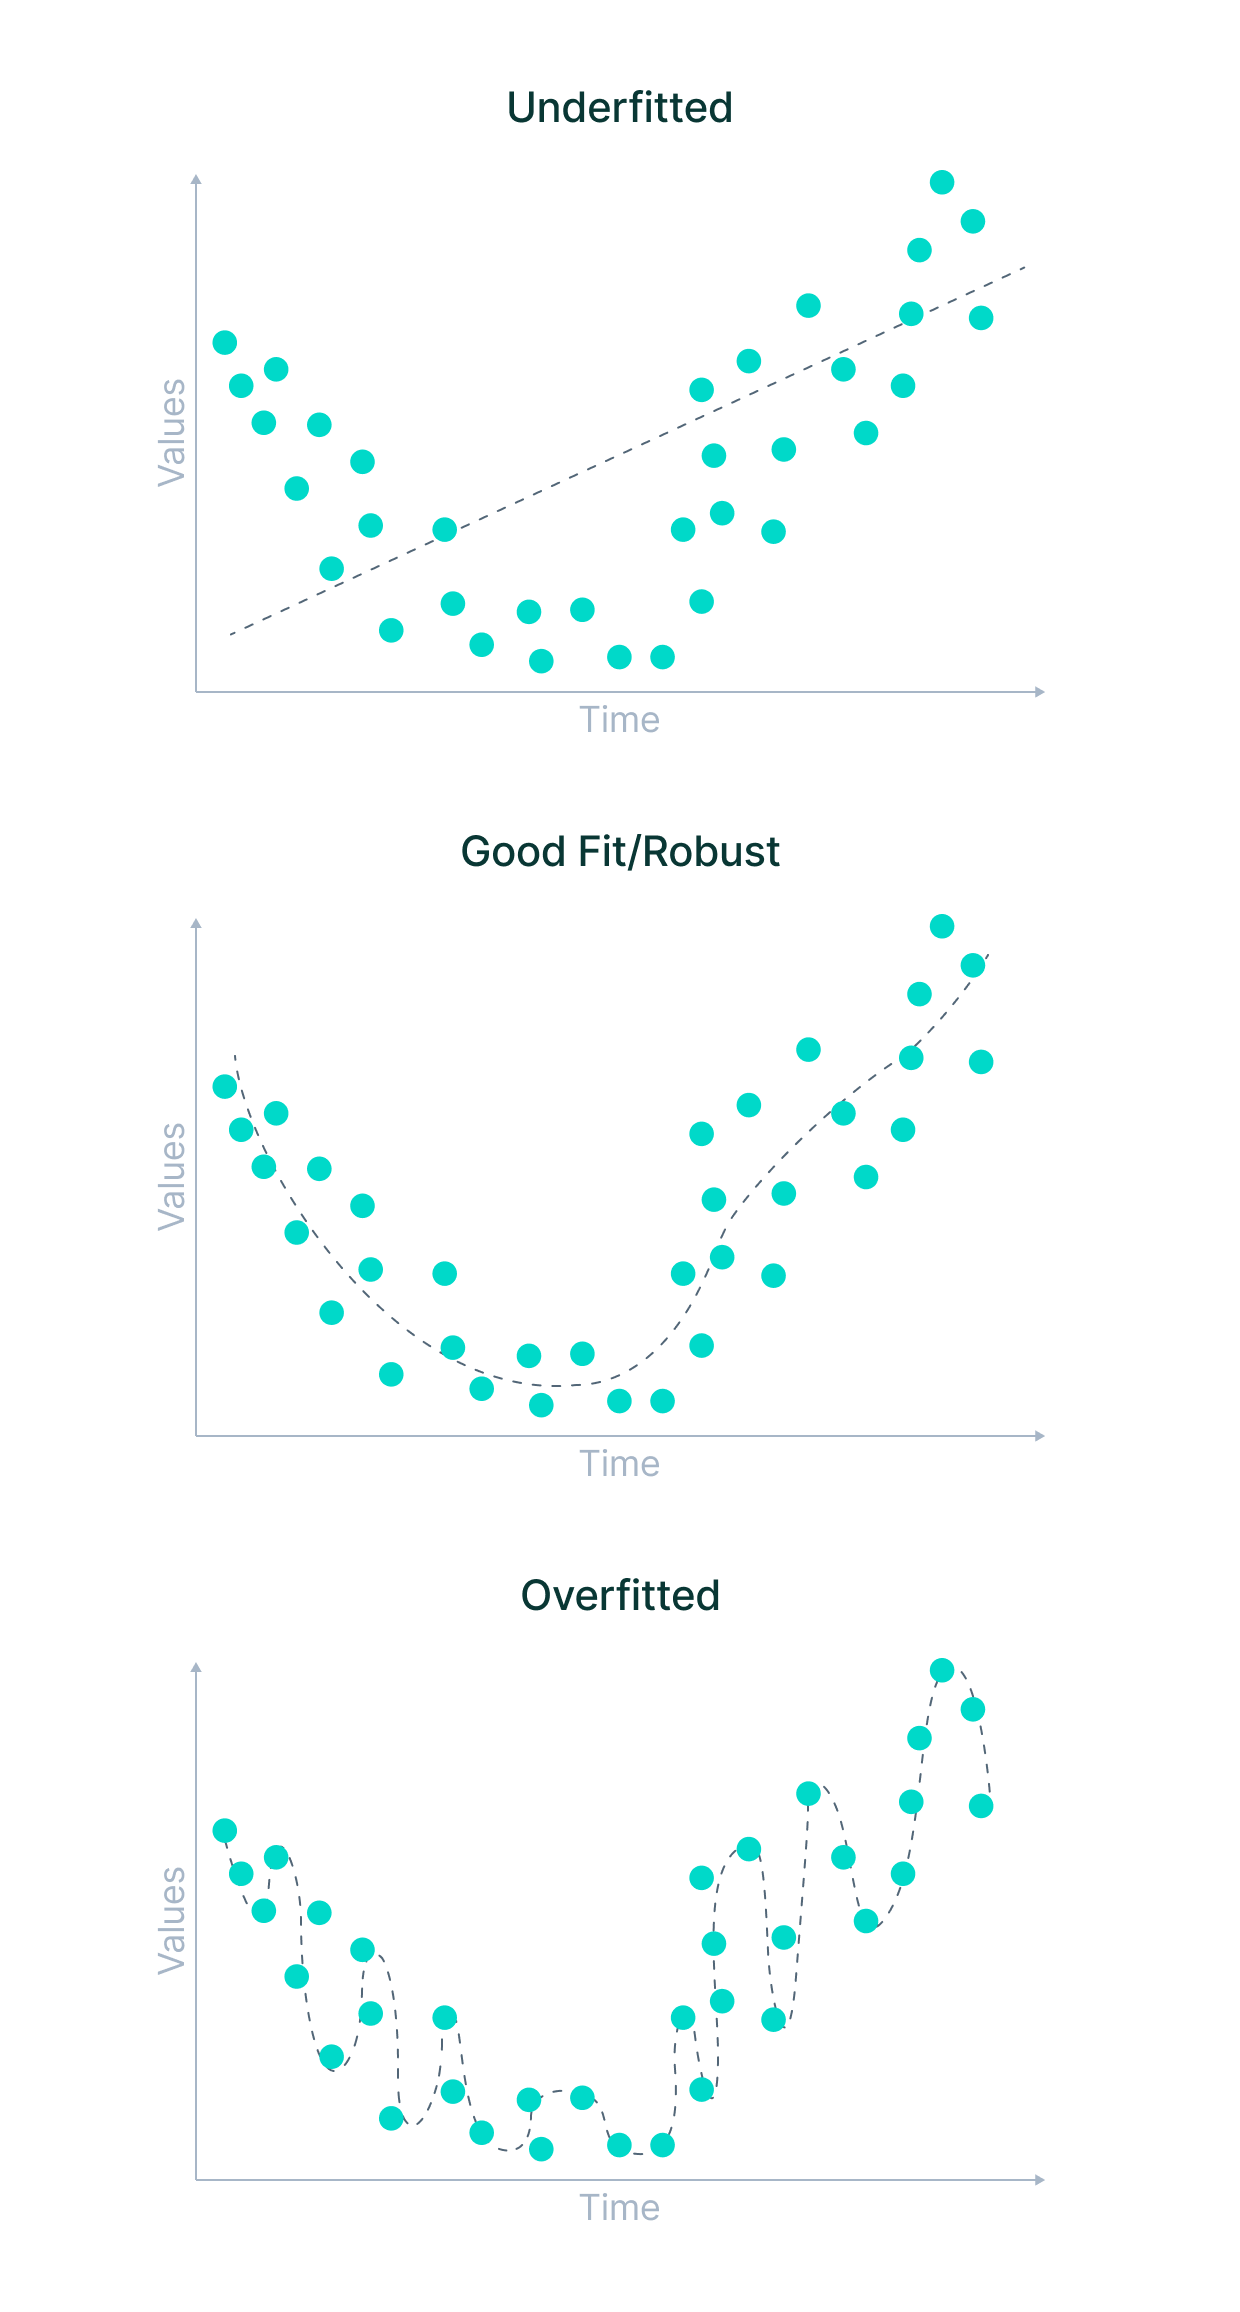 Underfitting and overfitting in machine learning